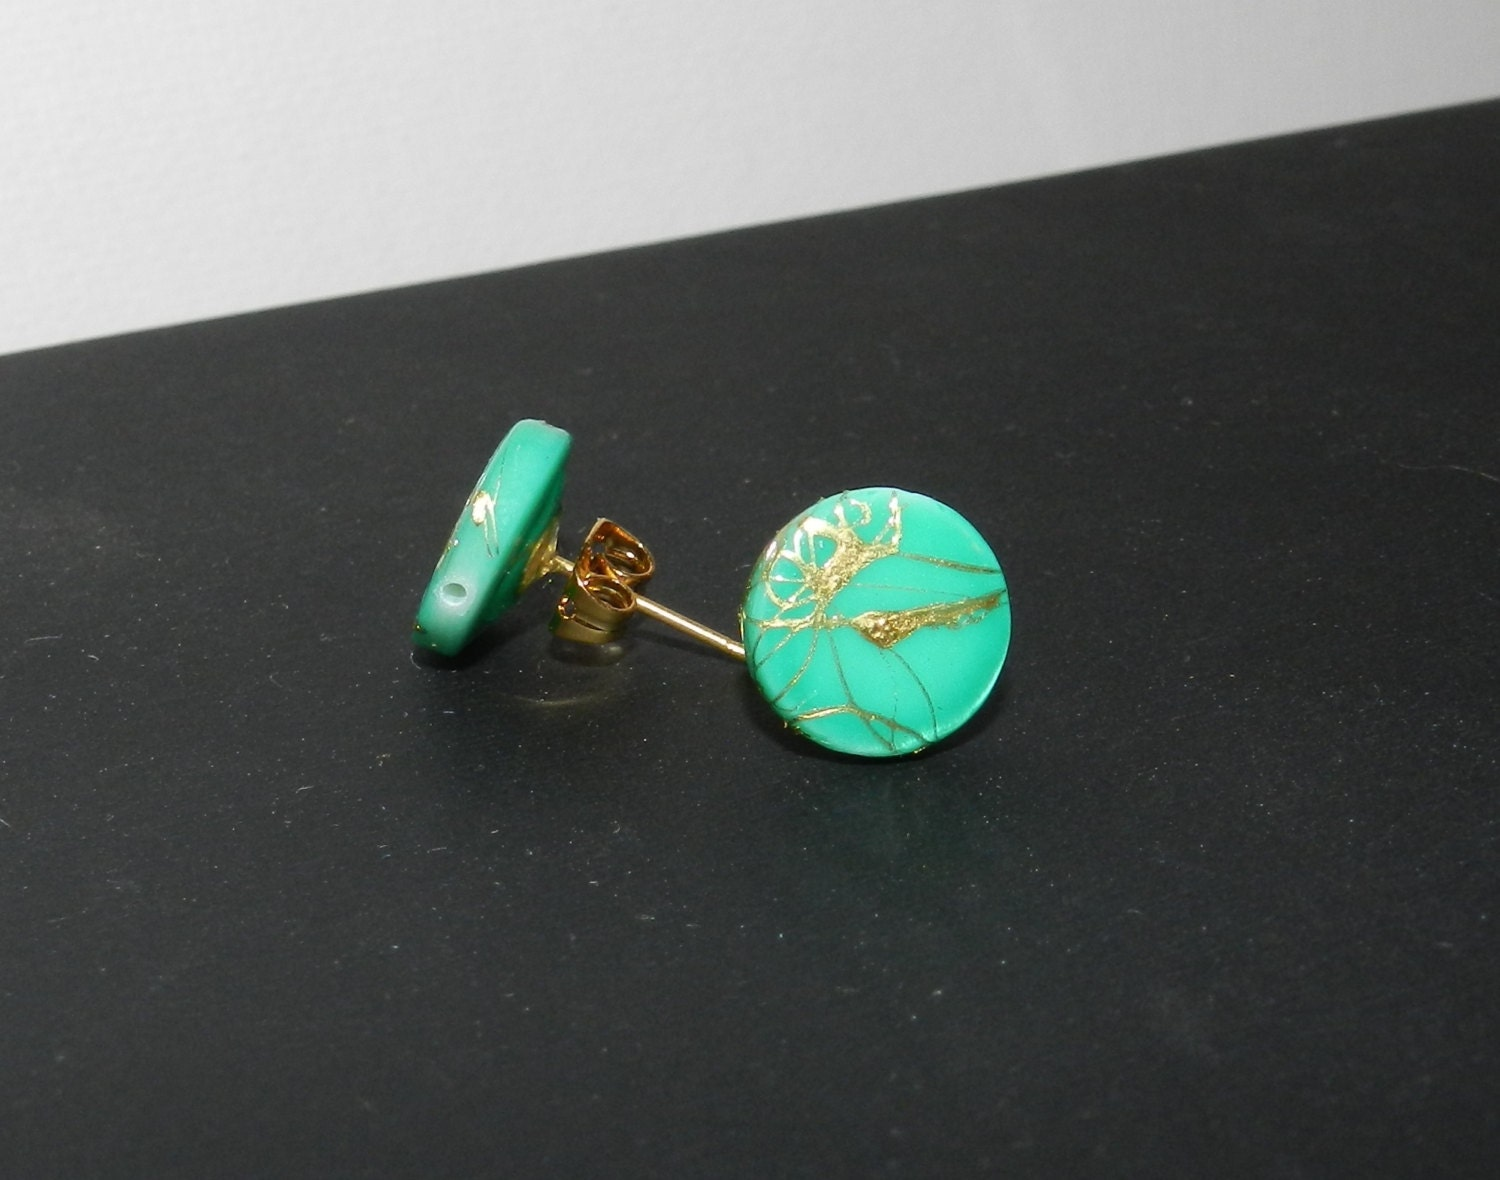 Green Paint Splattered Earrings A01322 by 3AnimalsAccessories